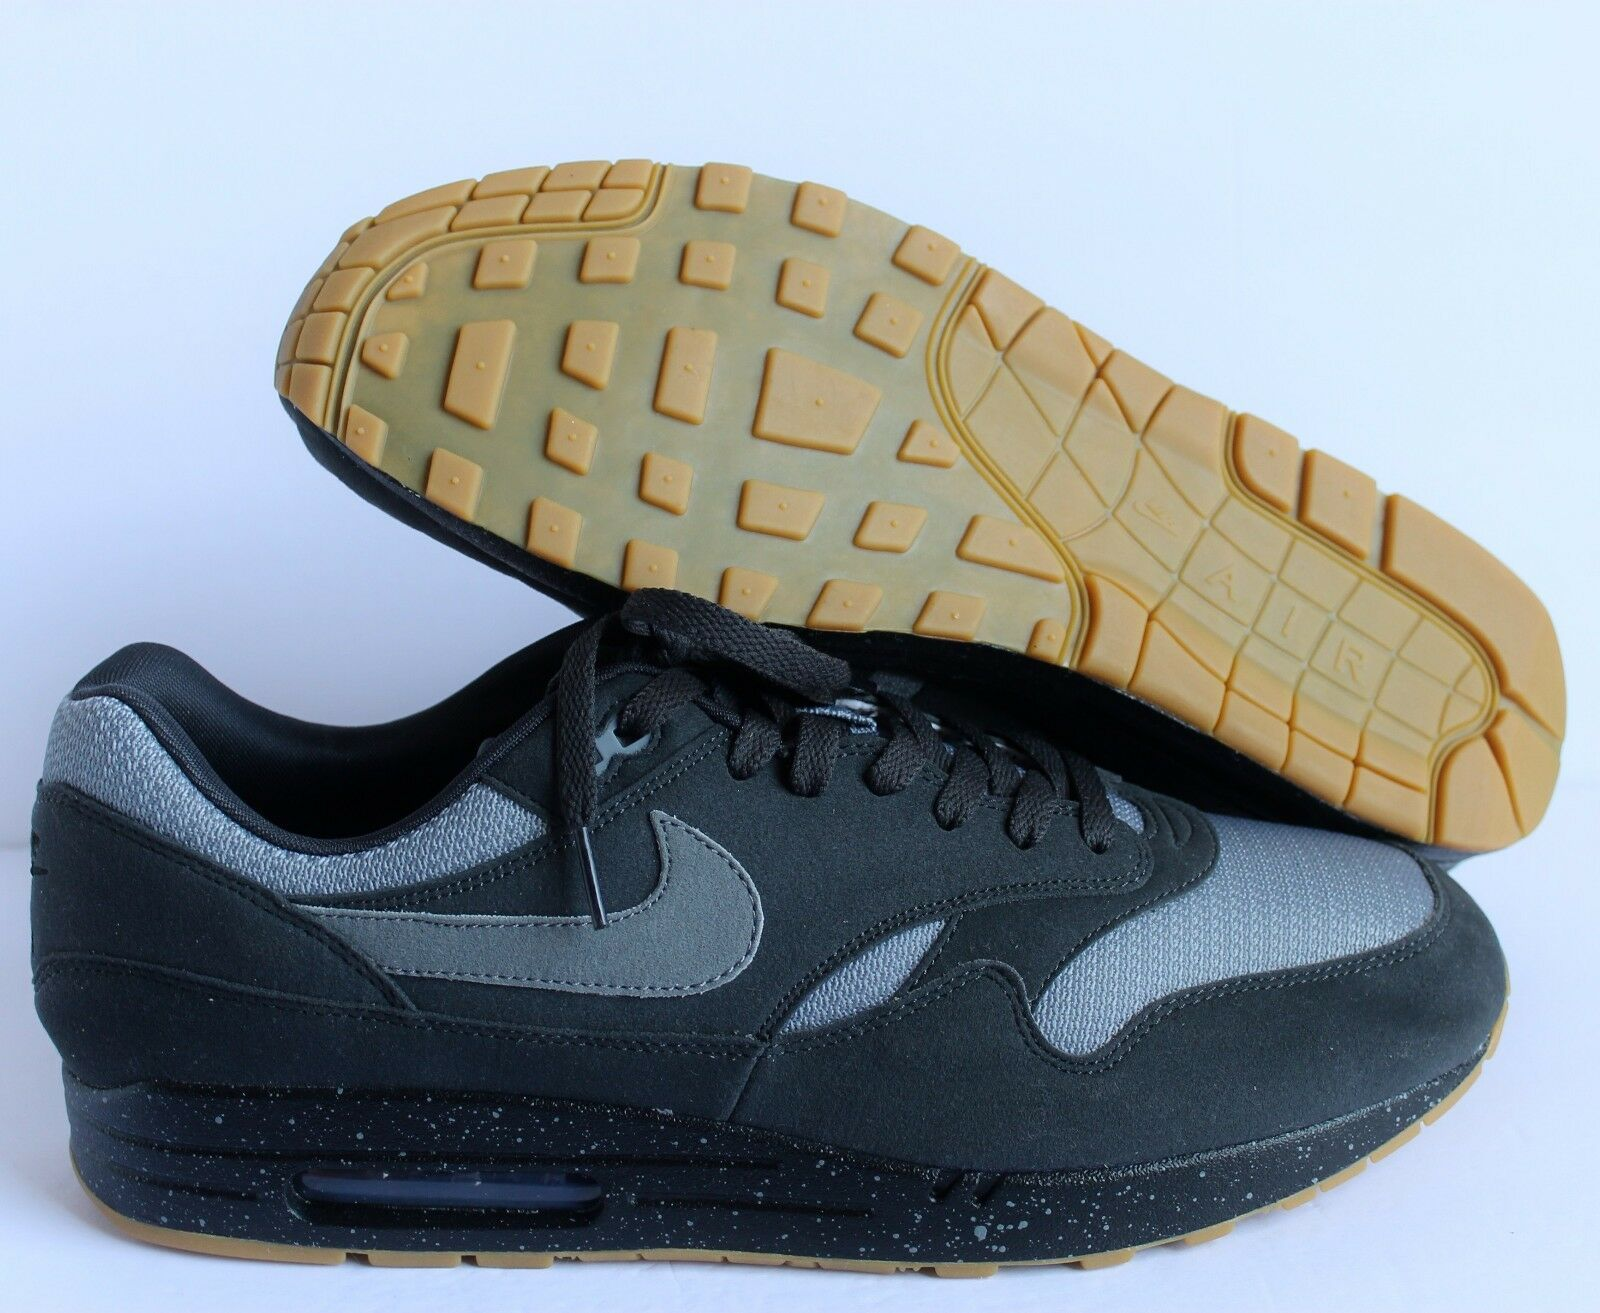 NIKE AIR MAX 1 ID BLACK-ANTHRACITE-GREY SZ 14